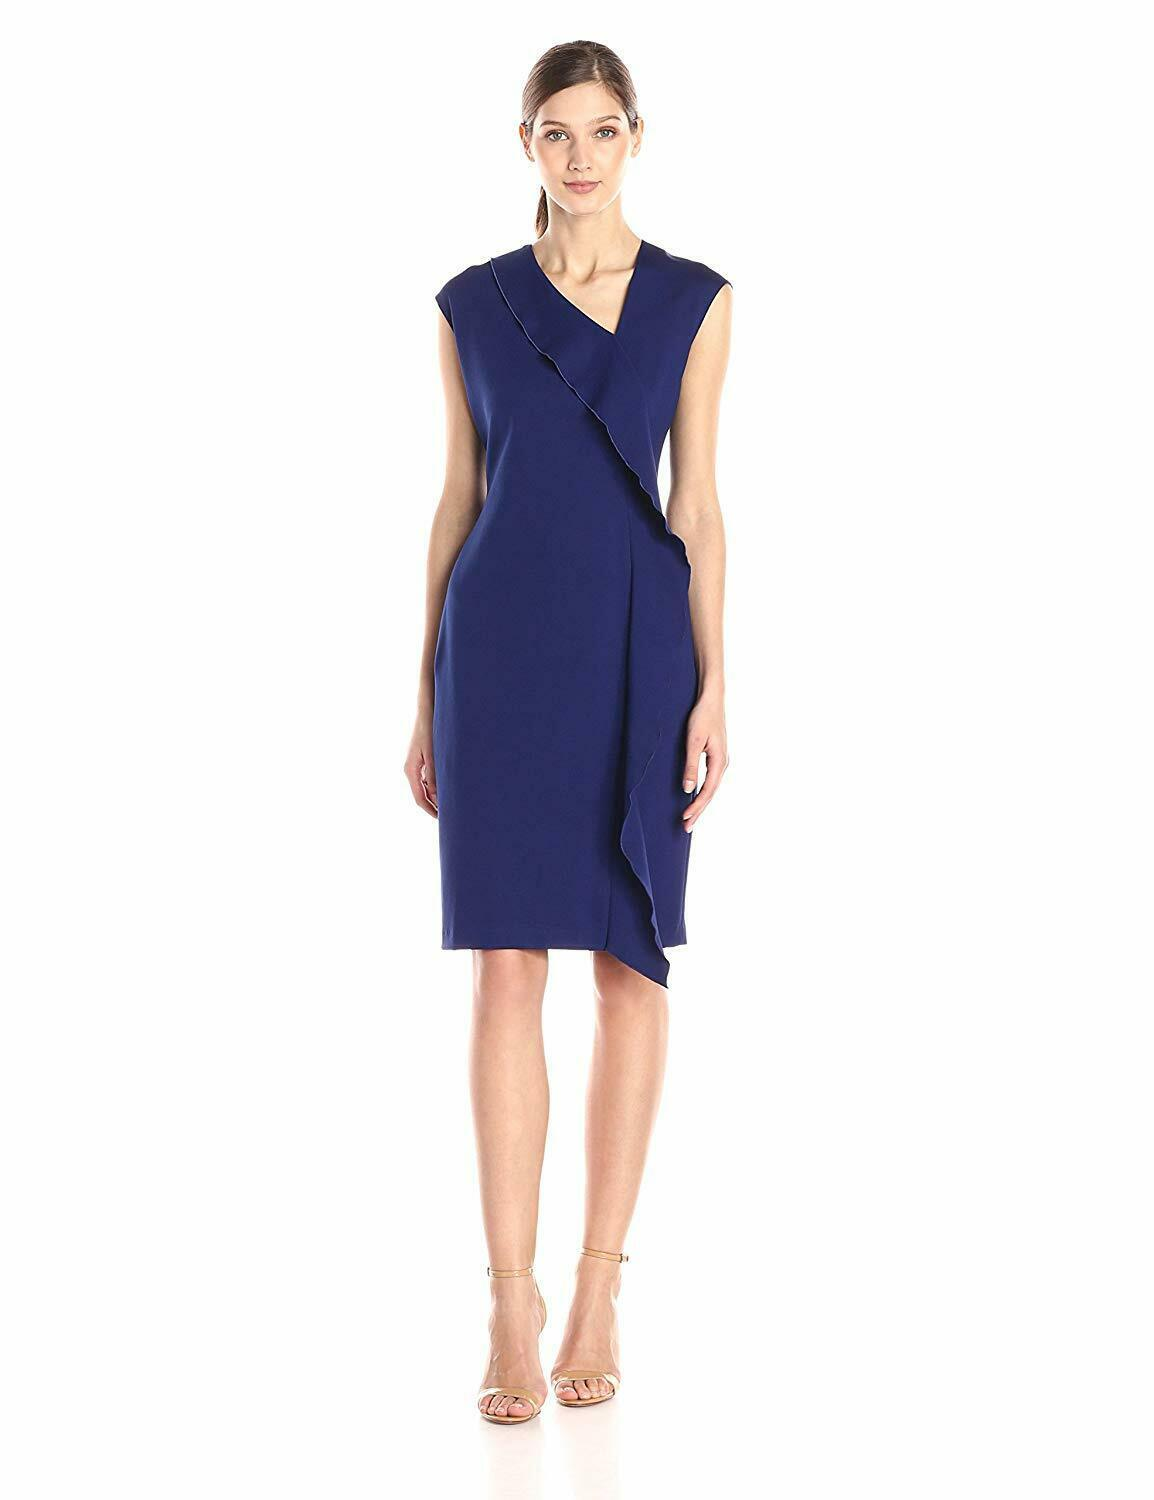 Primary image for New Anne Klein Women's Cap Sleeve Cascade Ruffle Sheath Dress Variety Color&Size